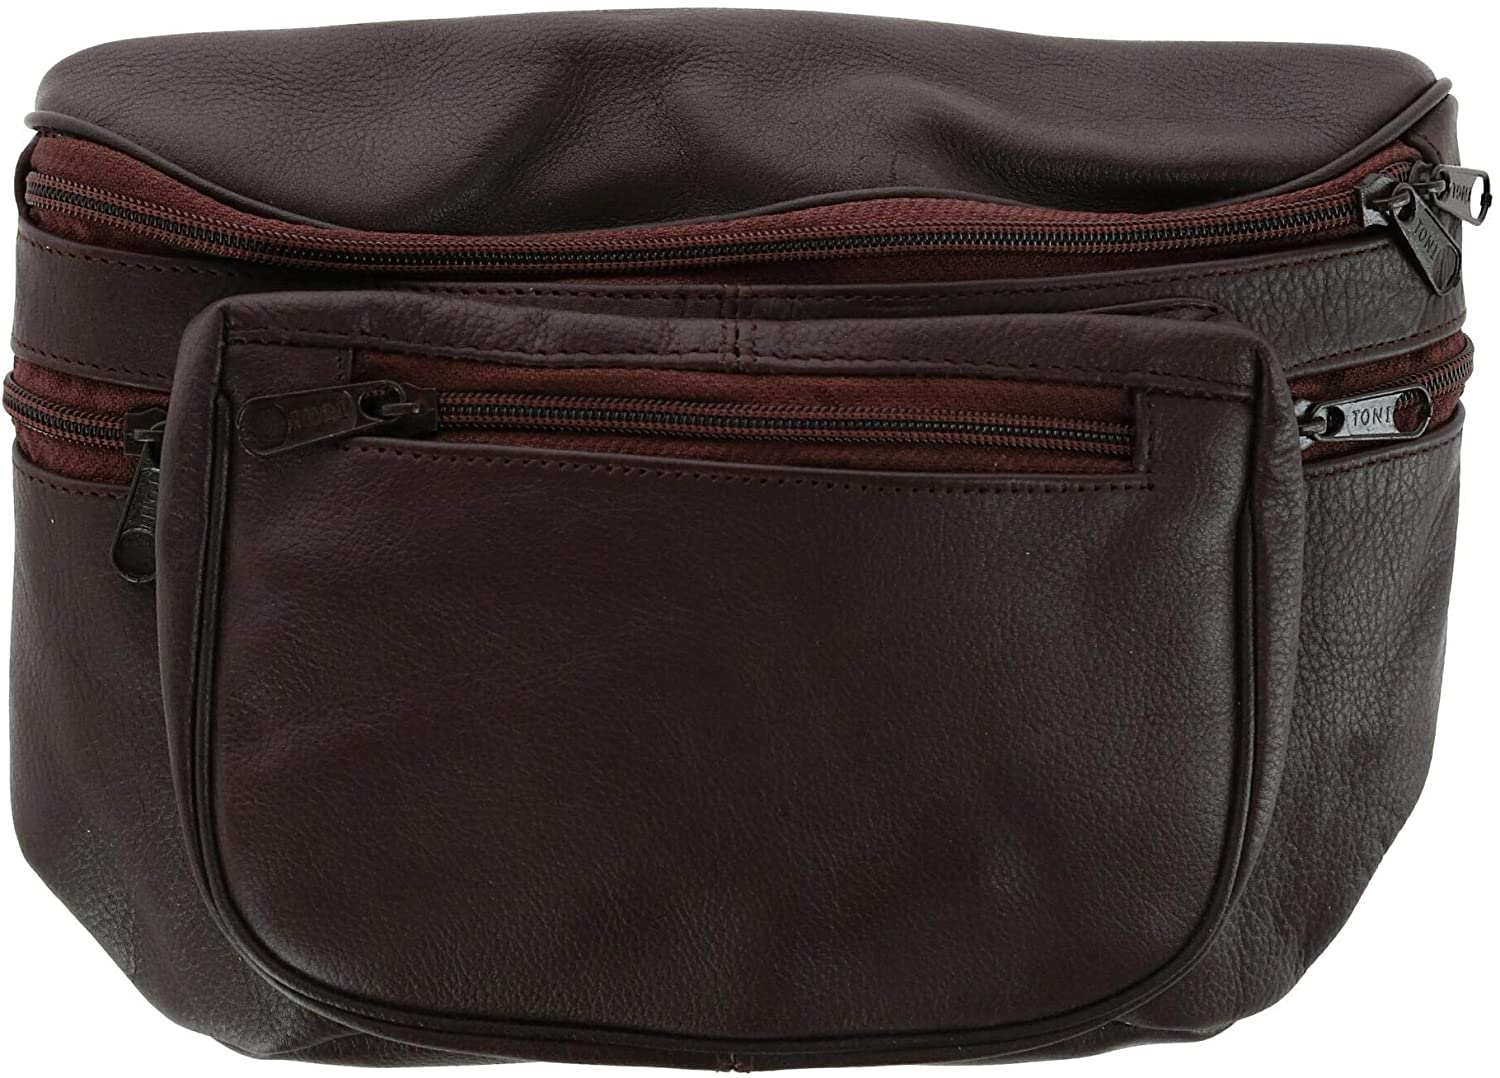 Leather Impressions Leather Large Multi Pocket Fanny Waist Pack, Brown